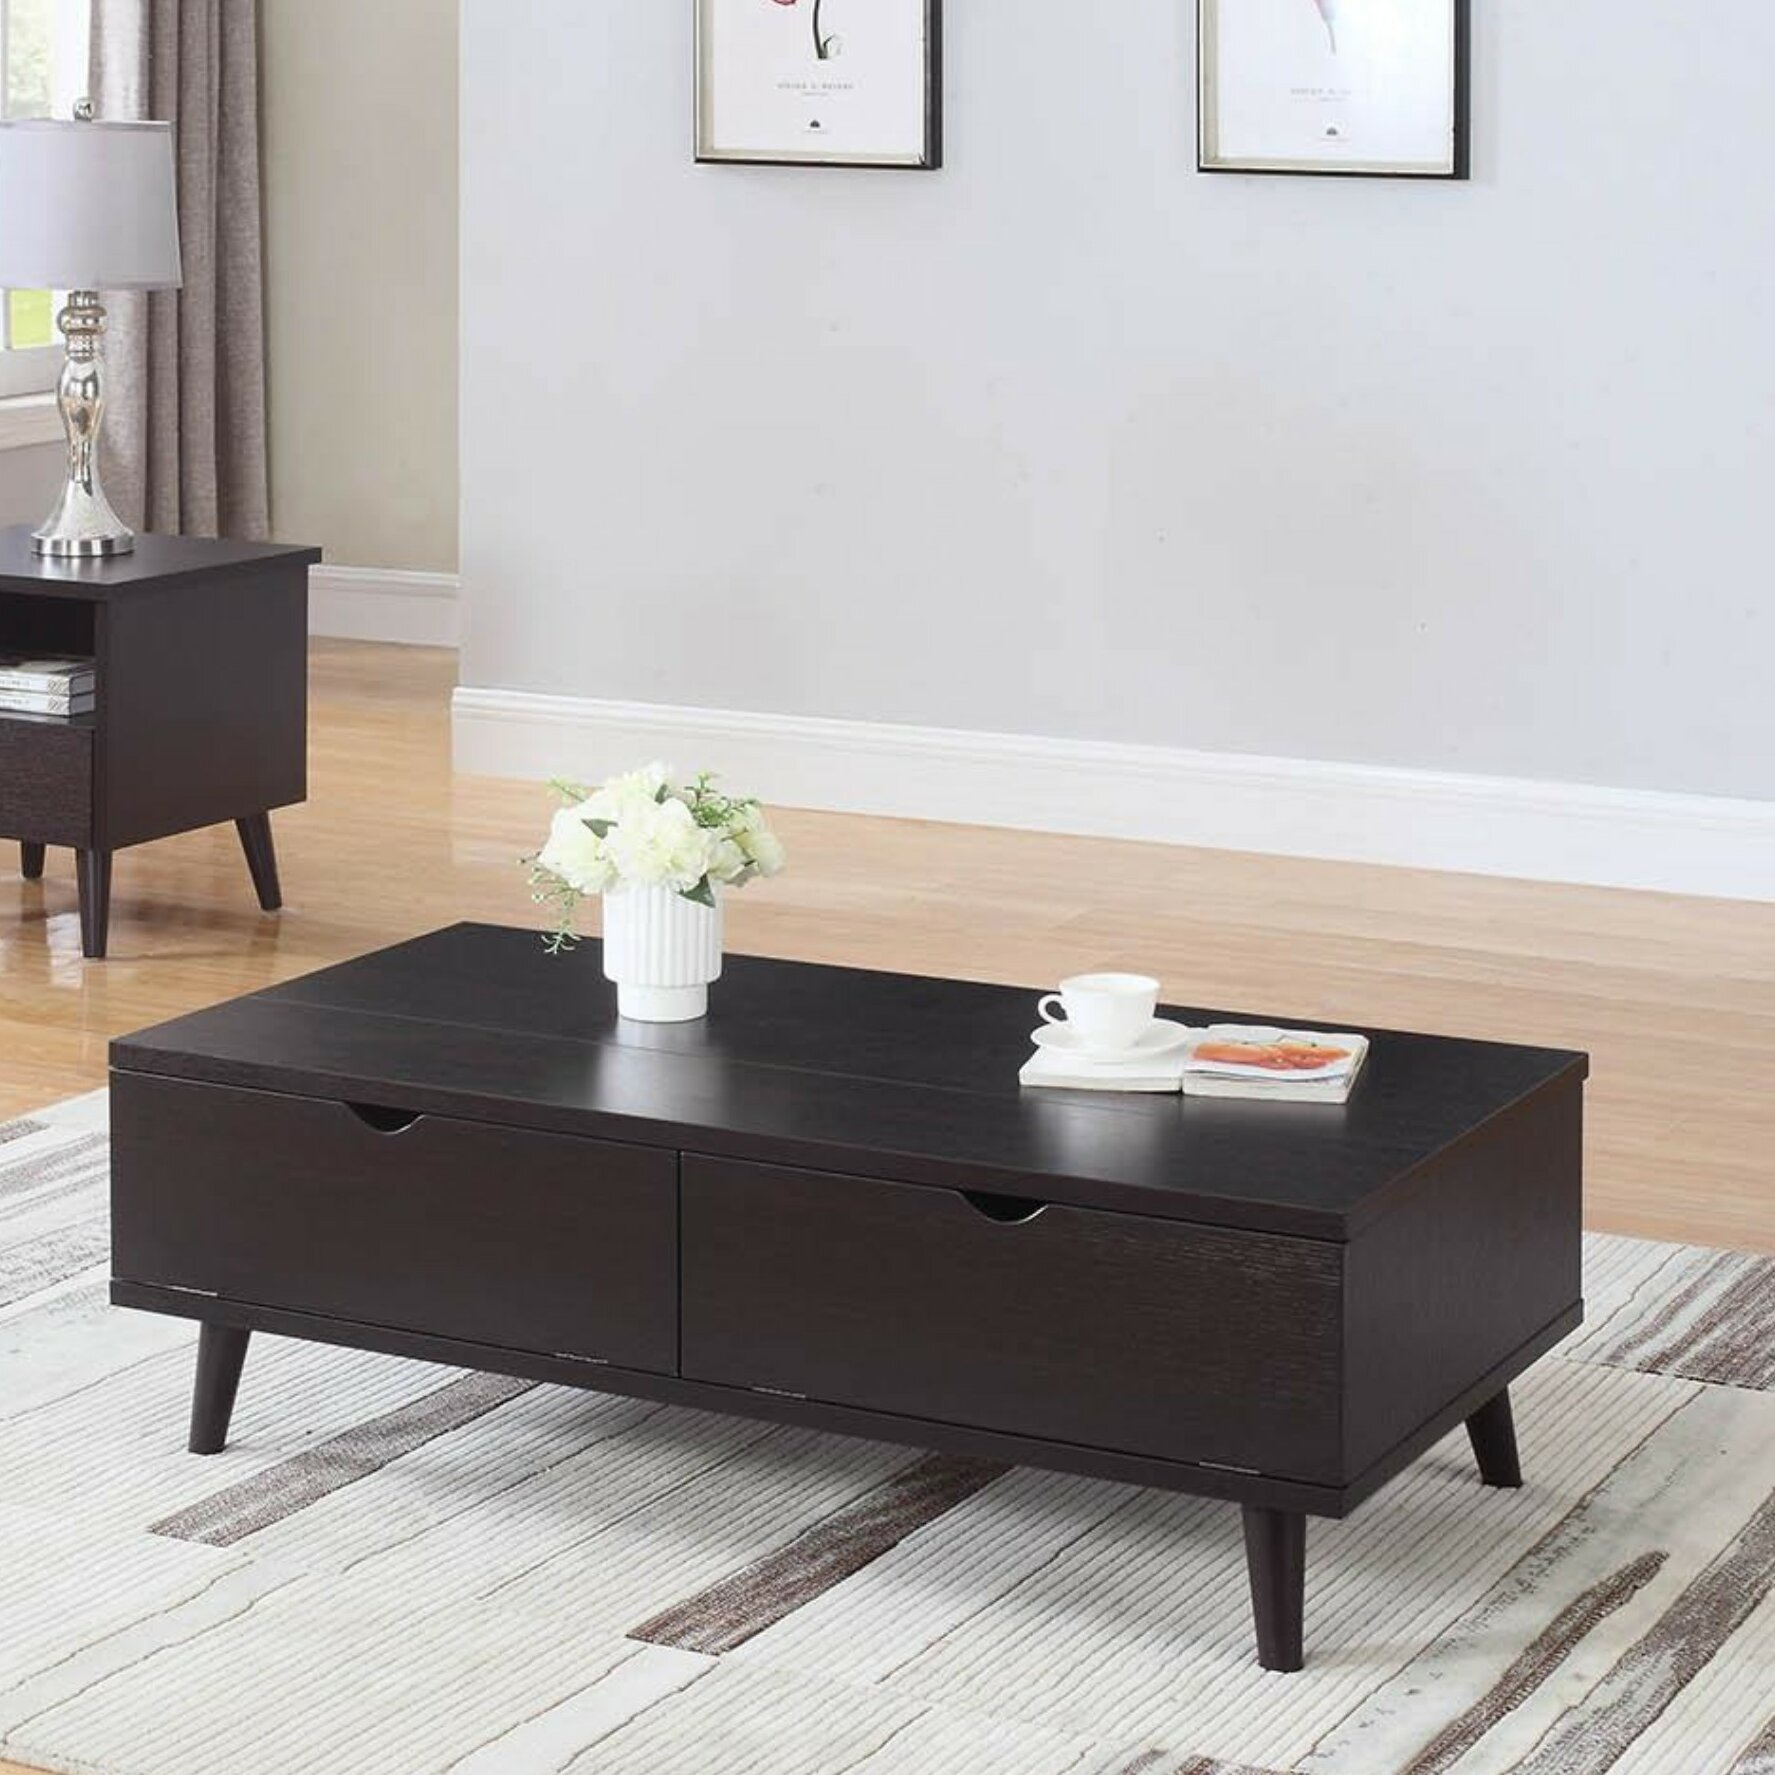 Bueno Modern Lift Top Wooden Coffee Table With Storage